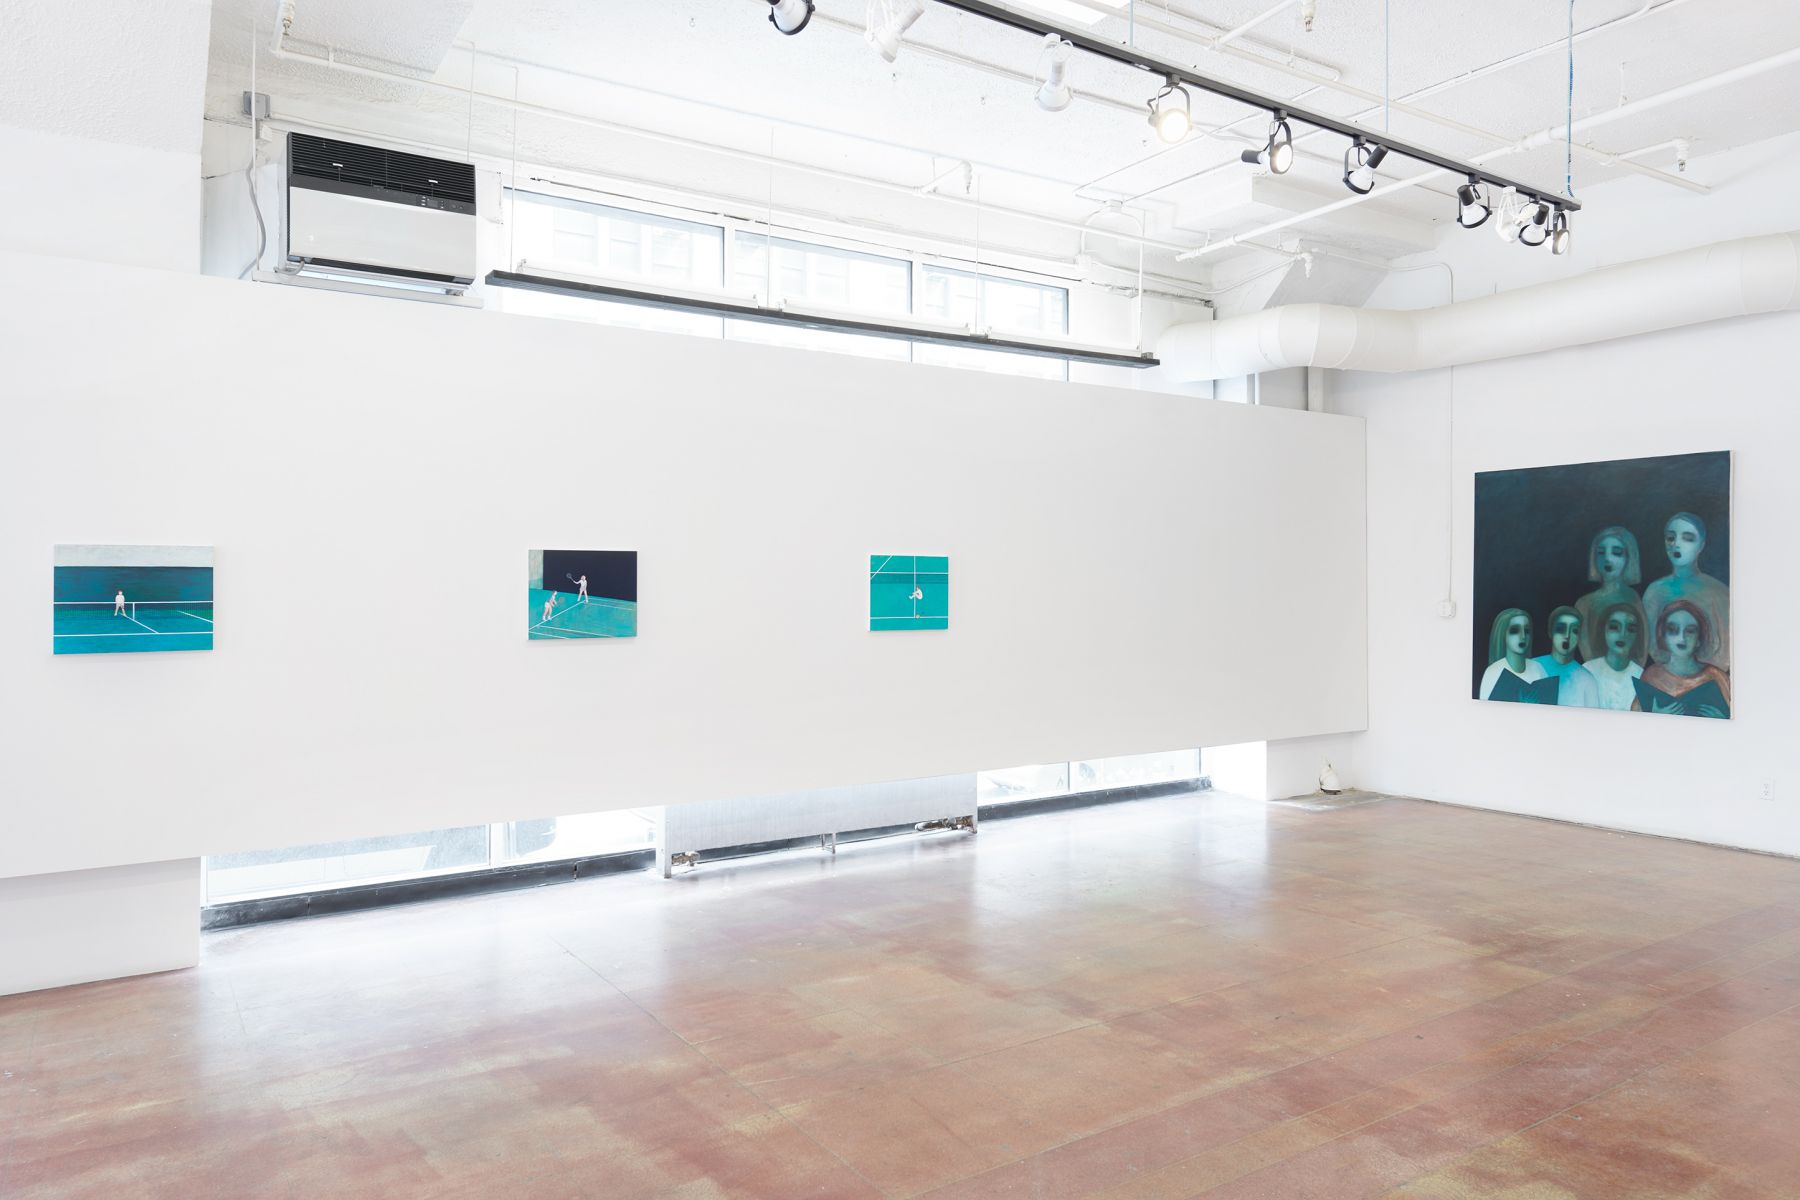 an installation view of Ayse Wilson's solo exhibition featuring large paintings.